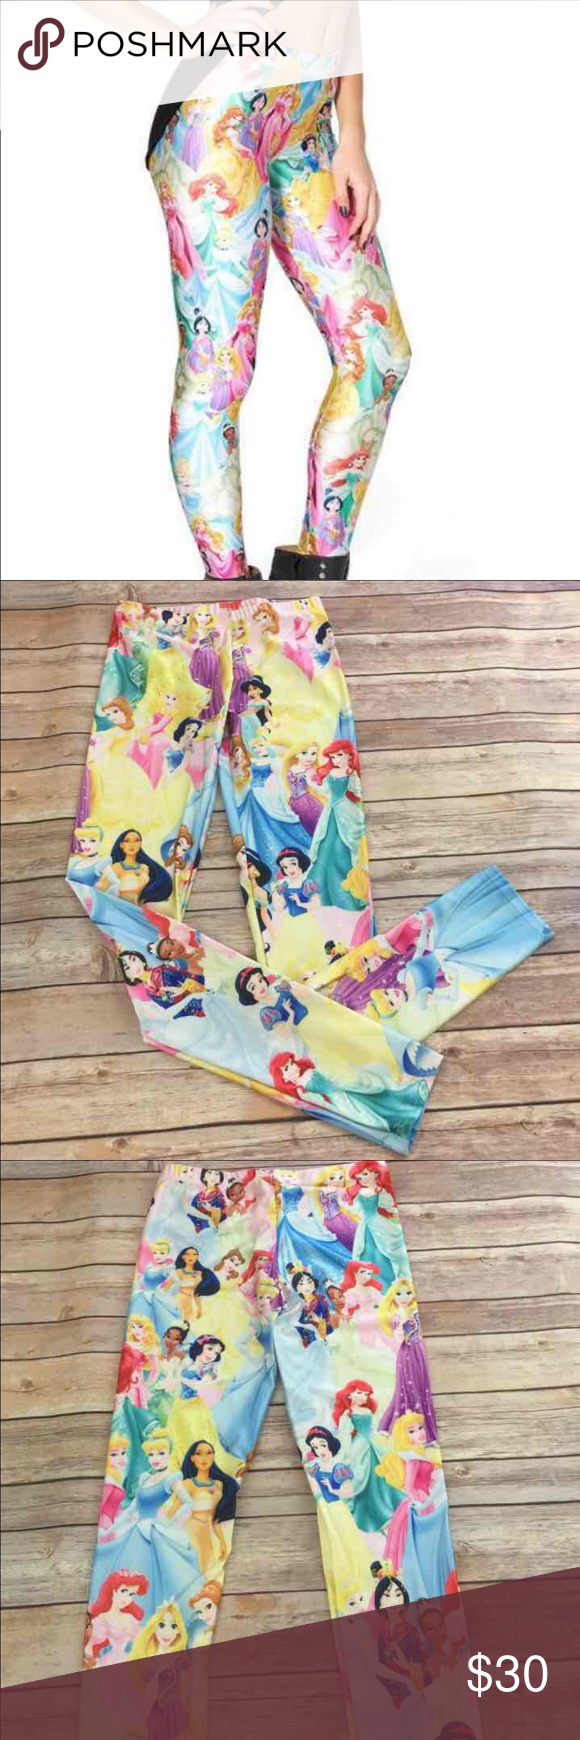 Disney Princess Leggings New without tags. Size medium. These are really stretchy. They don't become see through.  Disney lover must have! Pants Leggings